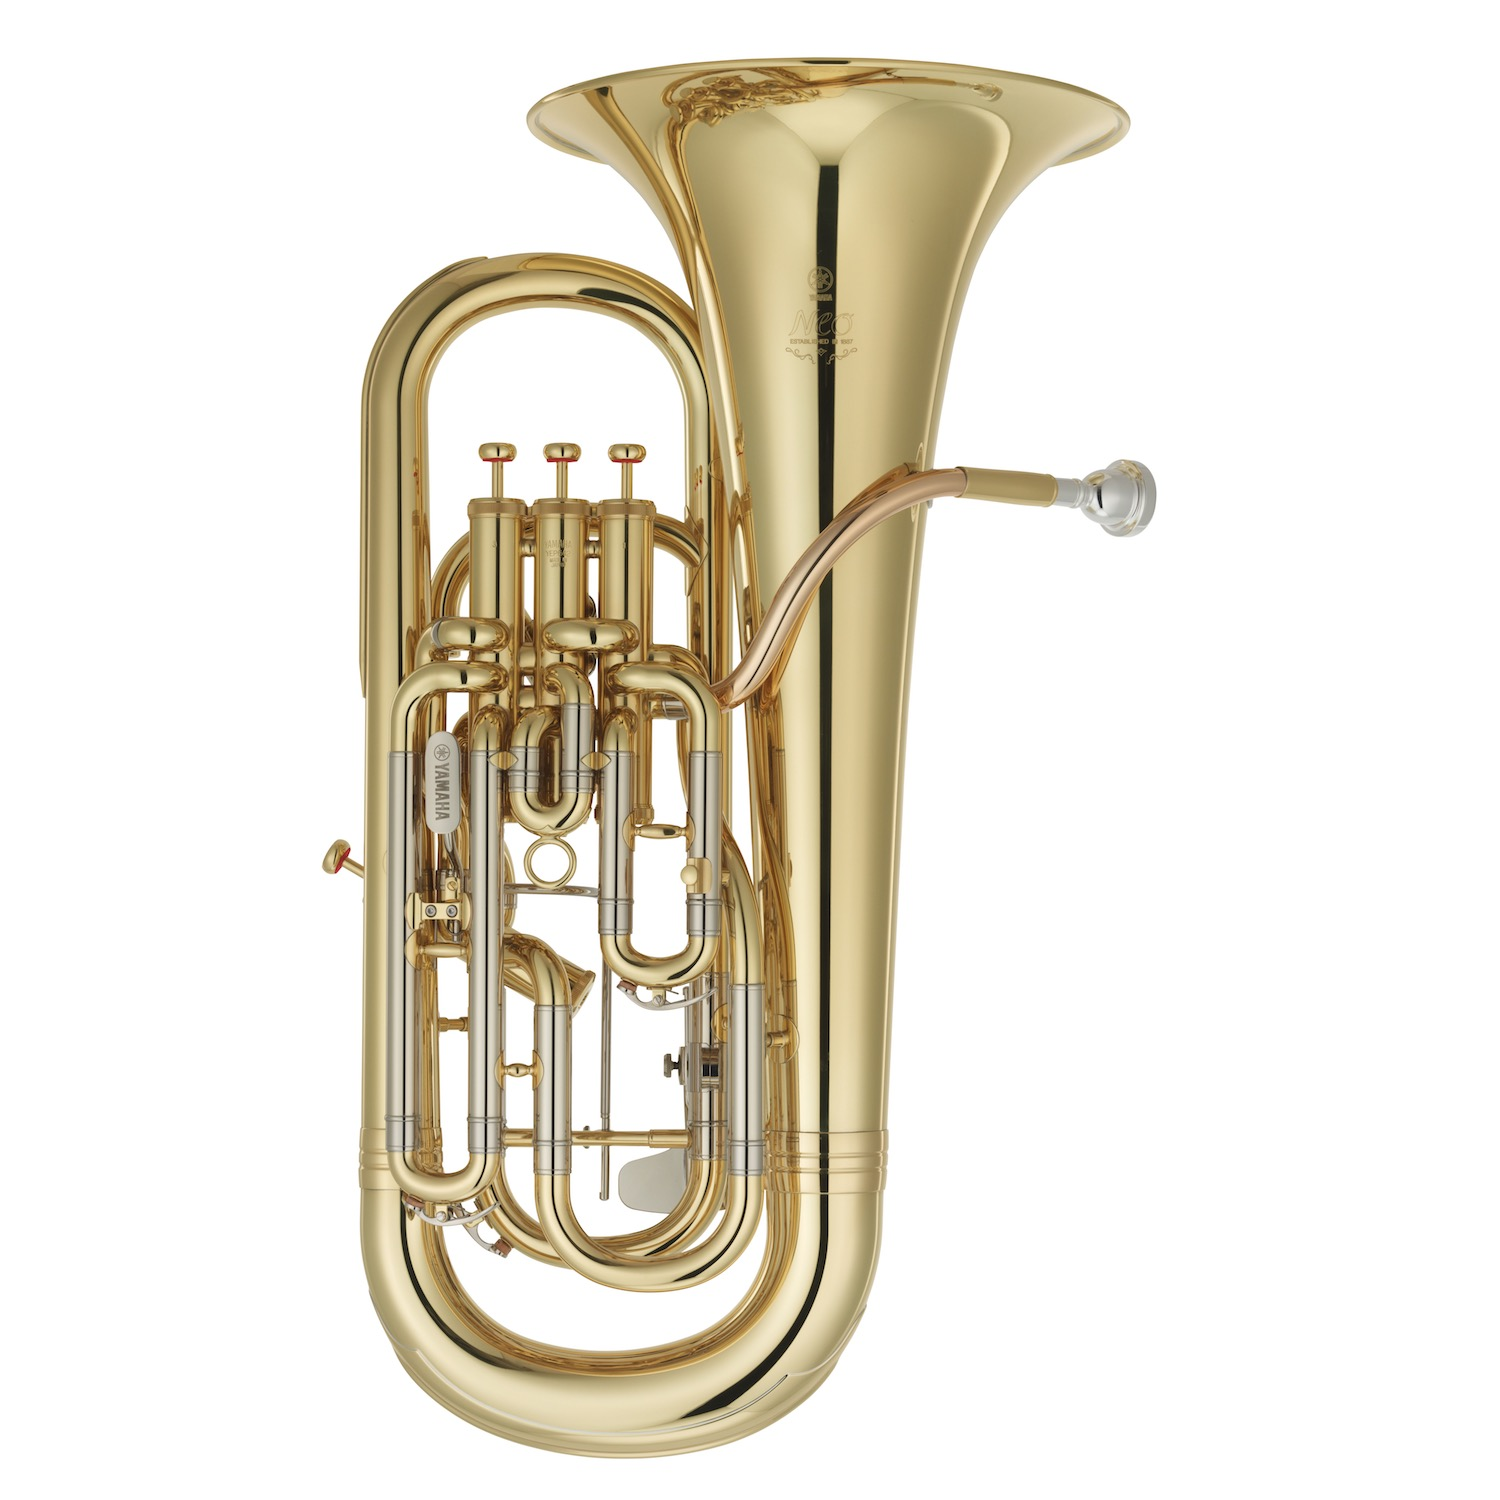 Yamaha Neo Model 642 Euphonium - New Trigger System - Multiple Finishes